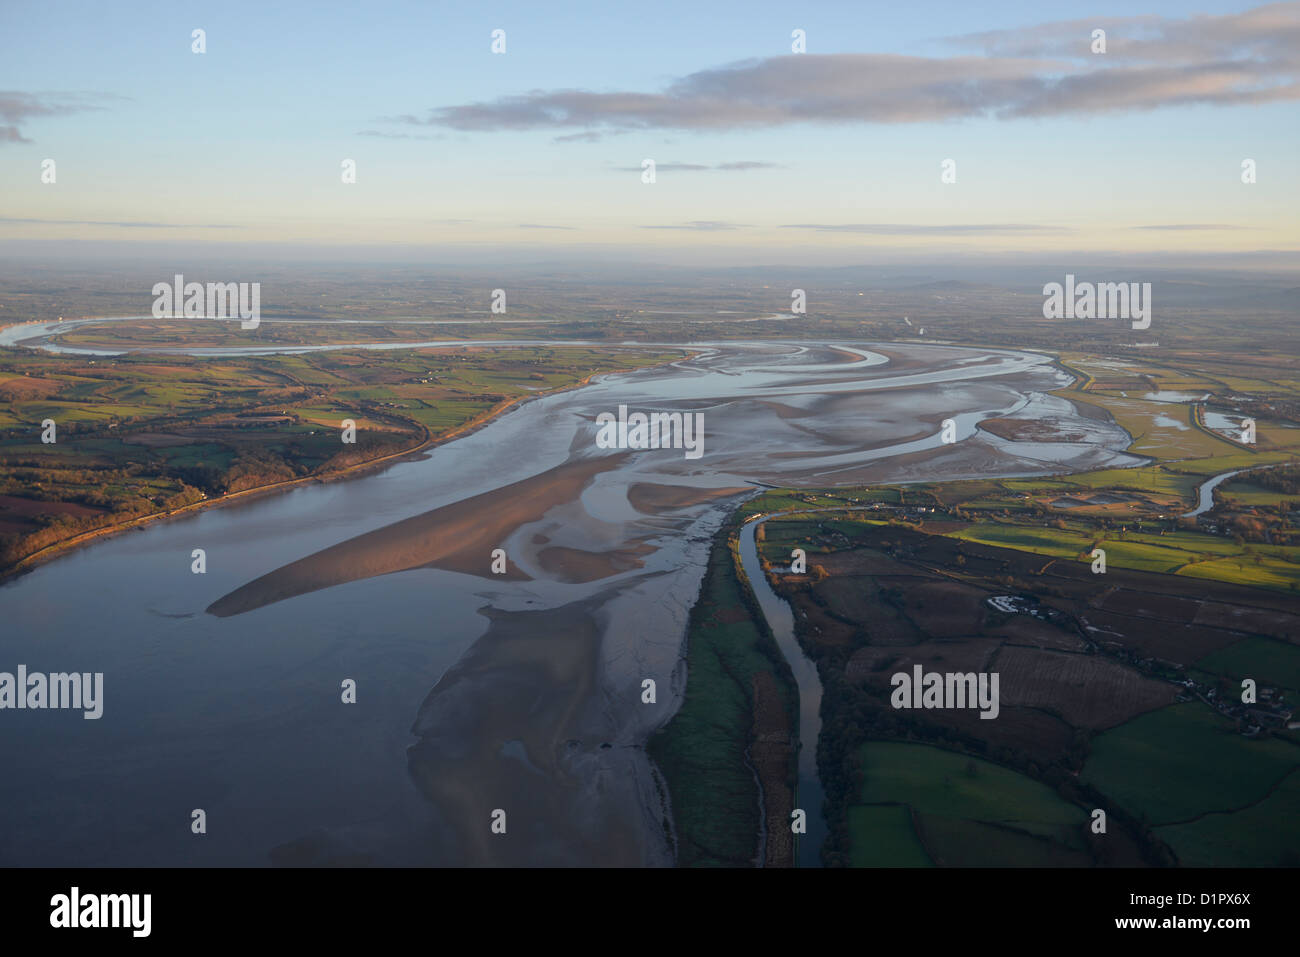 Aerial photograph of the River Severn - Stock Image